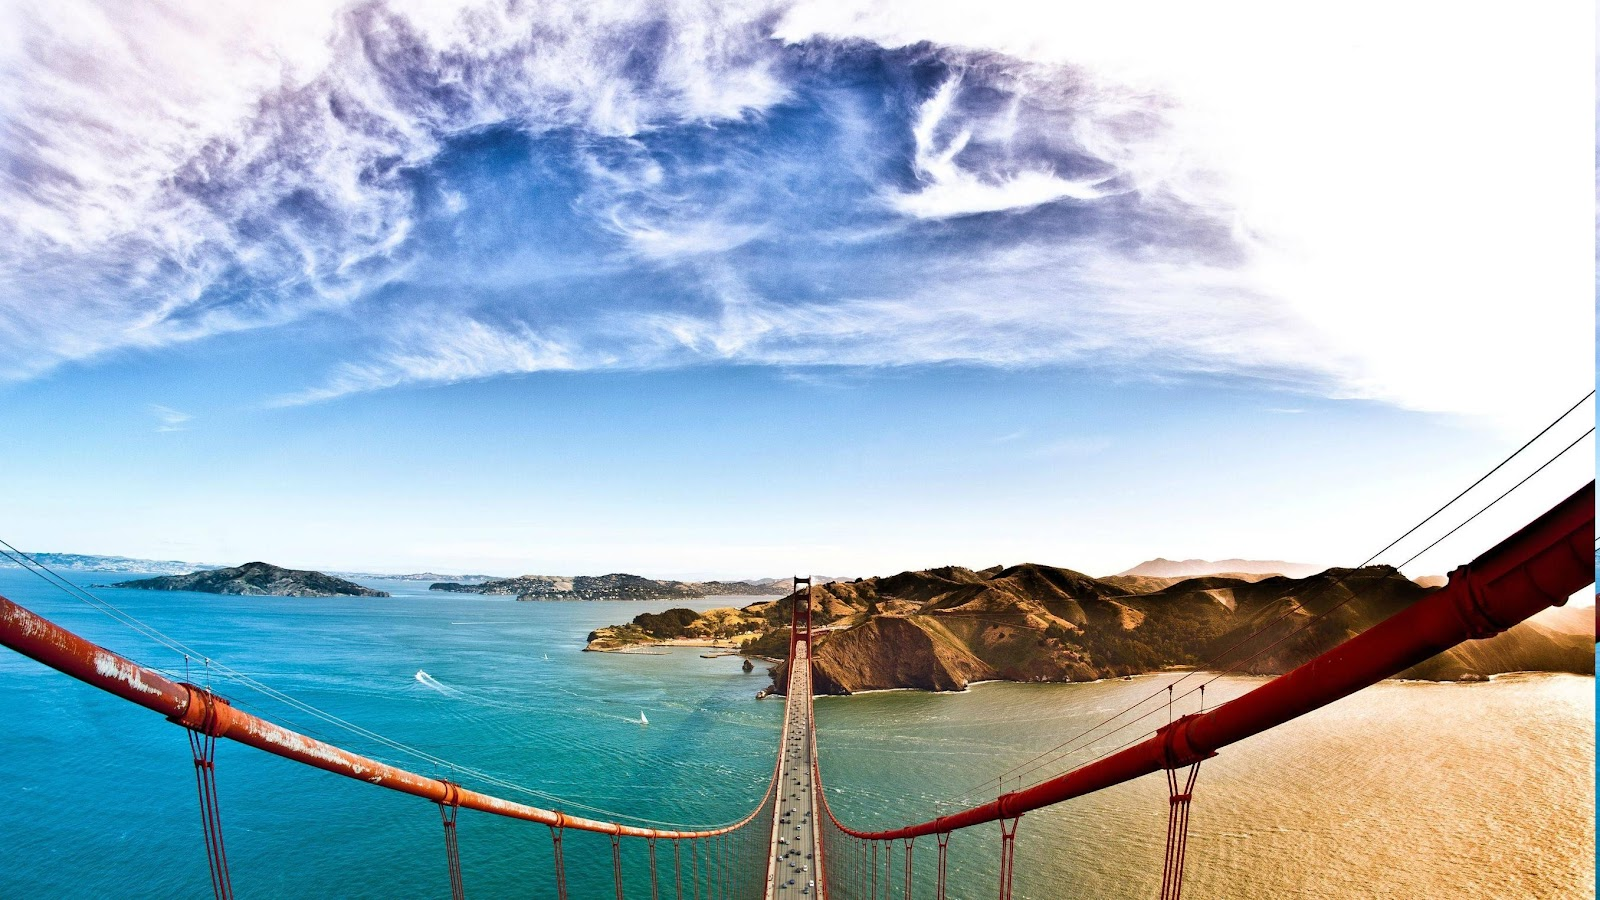 167699-nature-landscape-water-bridge-hill-trees-architecture-car-clouds-Golden_Gate_Bridge-San_Francisco_Bay-USA-bird039s_eye_view-top_view.jpg